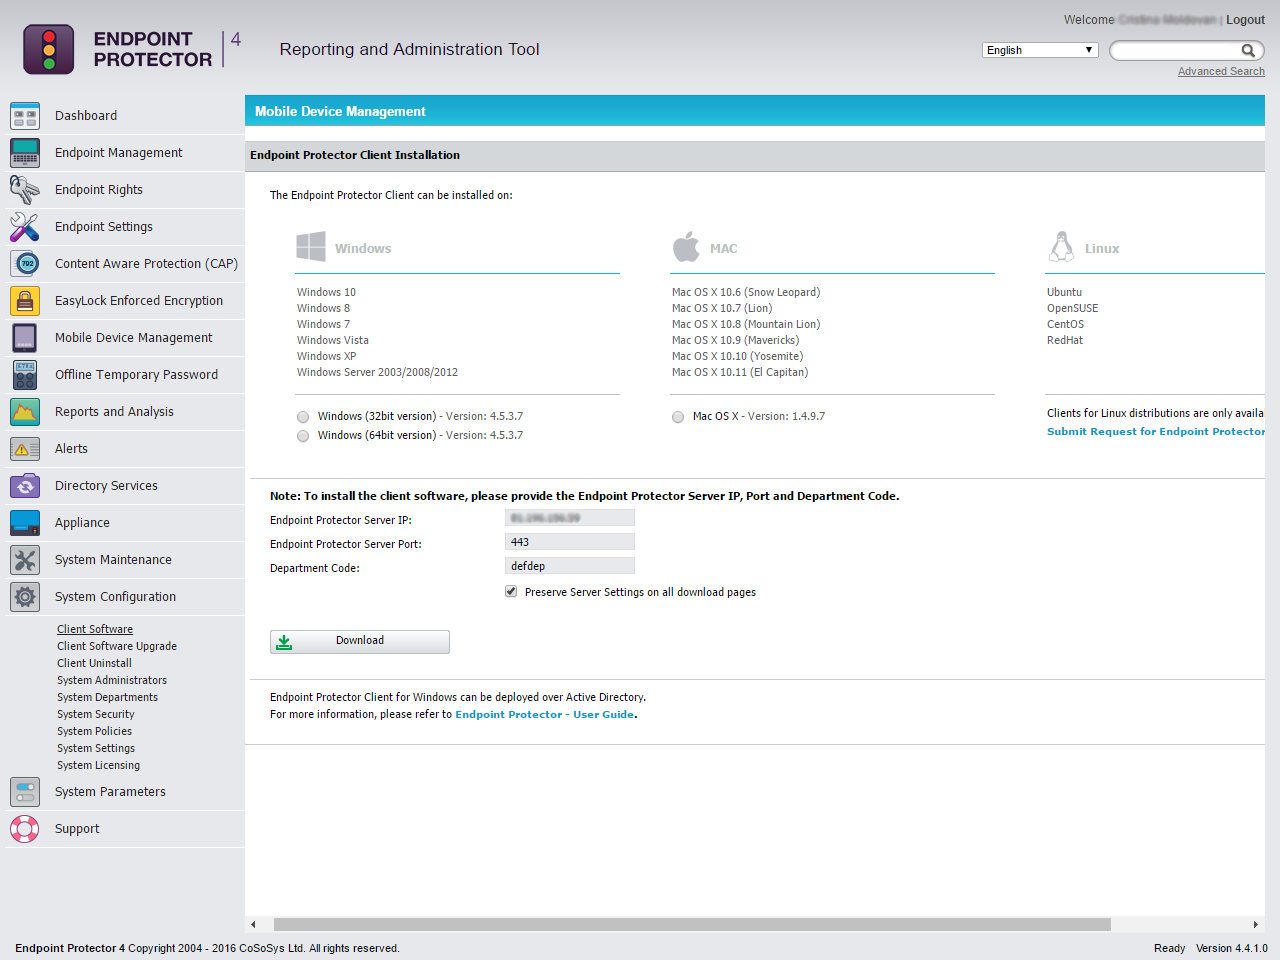 Endpoint Protector 4 - Client Software